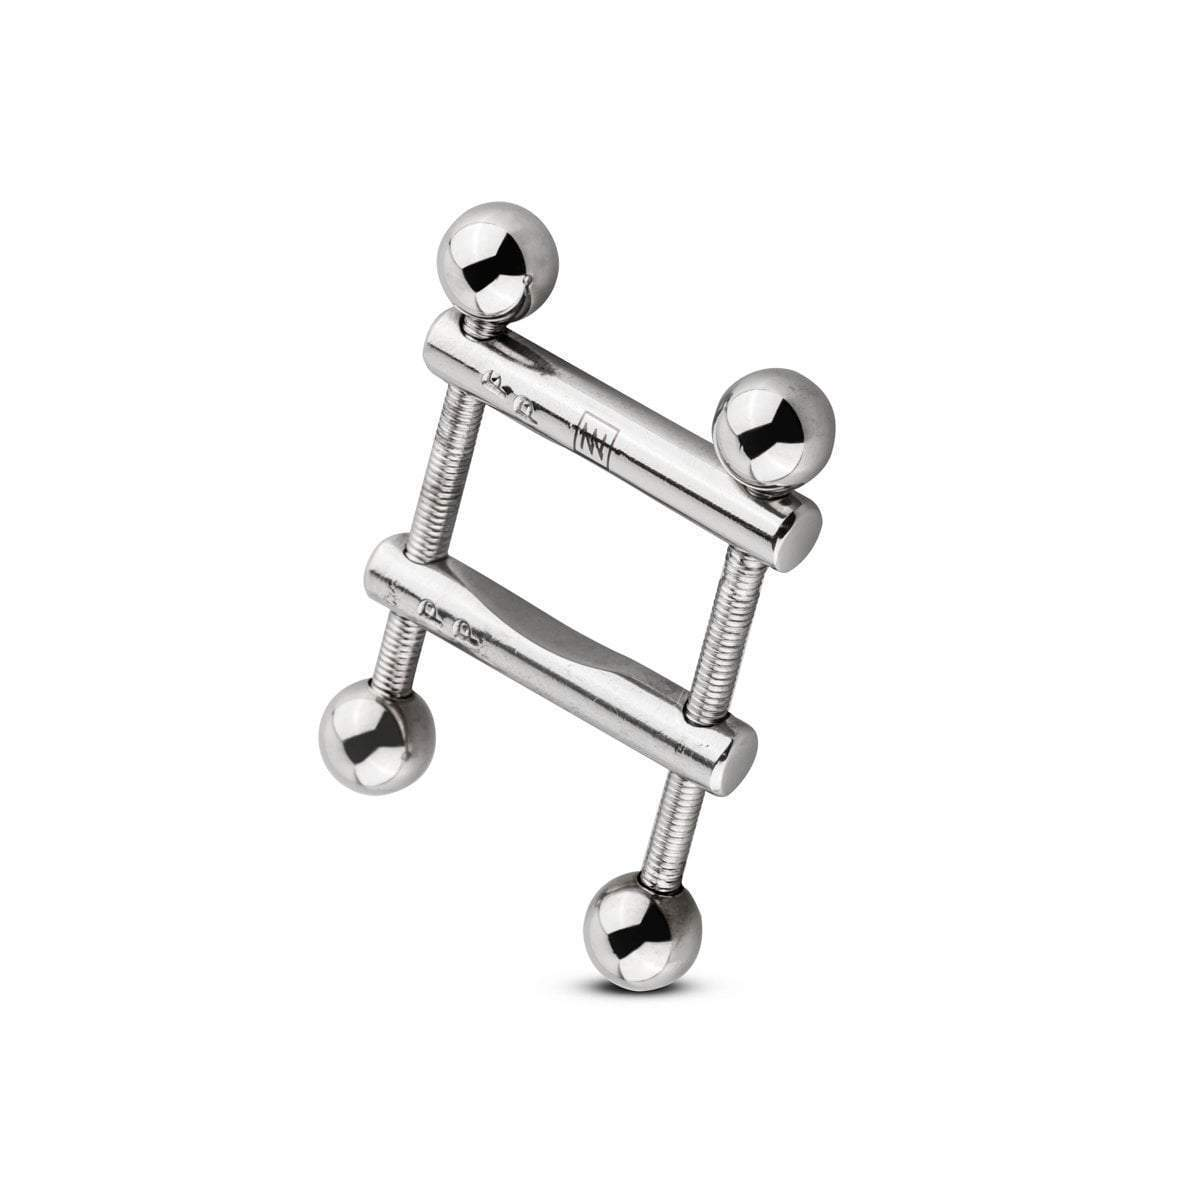 sinner gear nipple clamp Stainless Steel Nipple Clamp